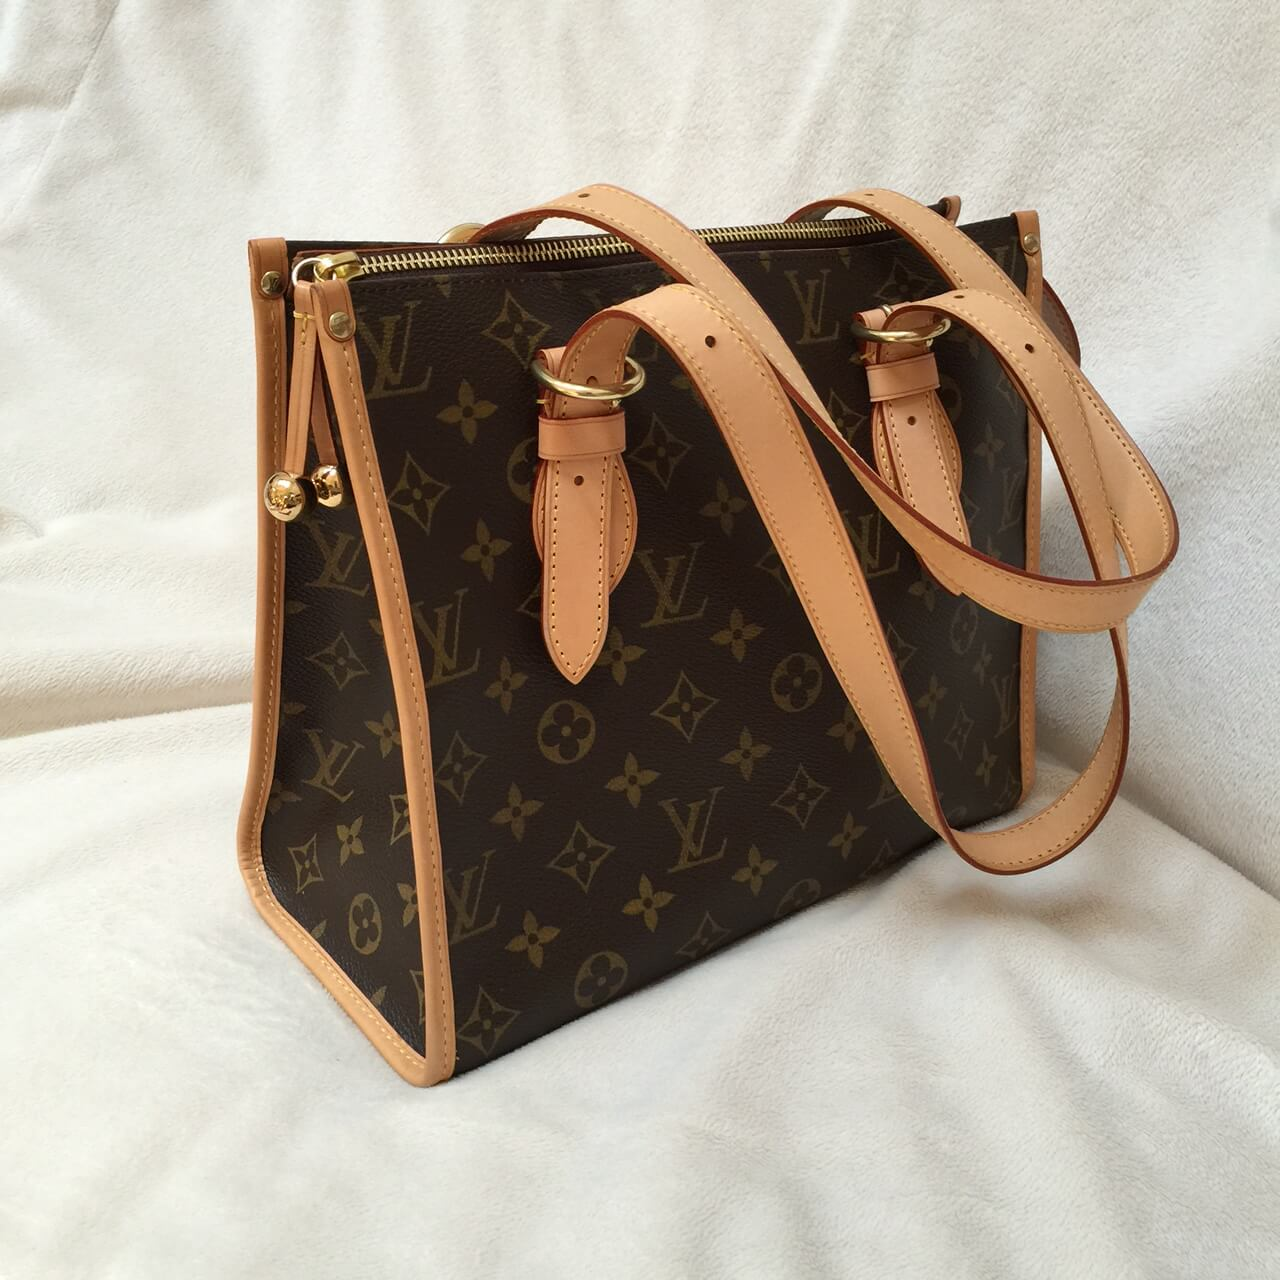 2e0c1f3dde66 How to Repair a Damaged Louis Vuitton Bag